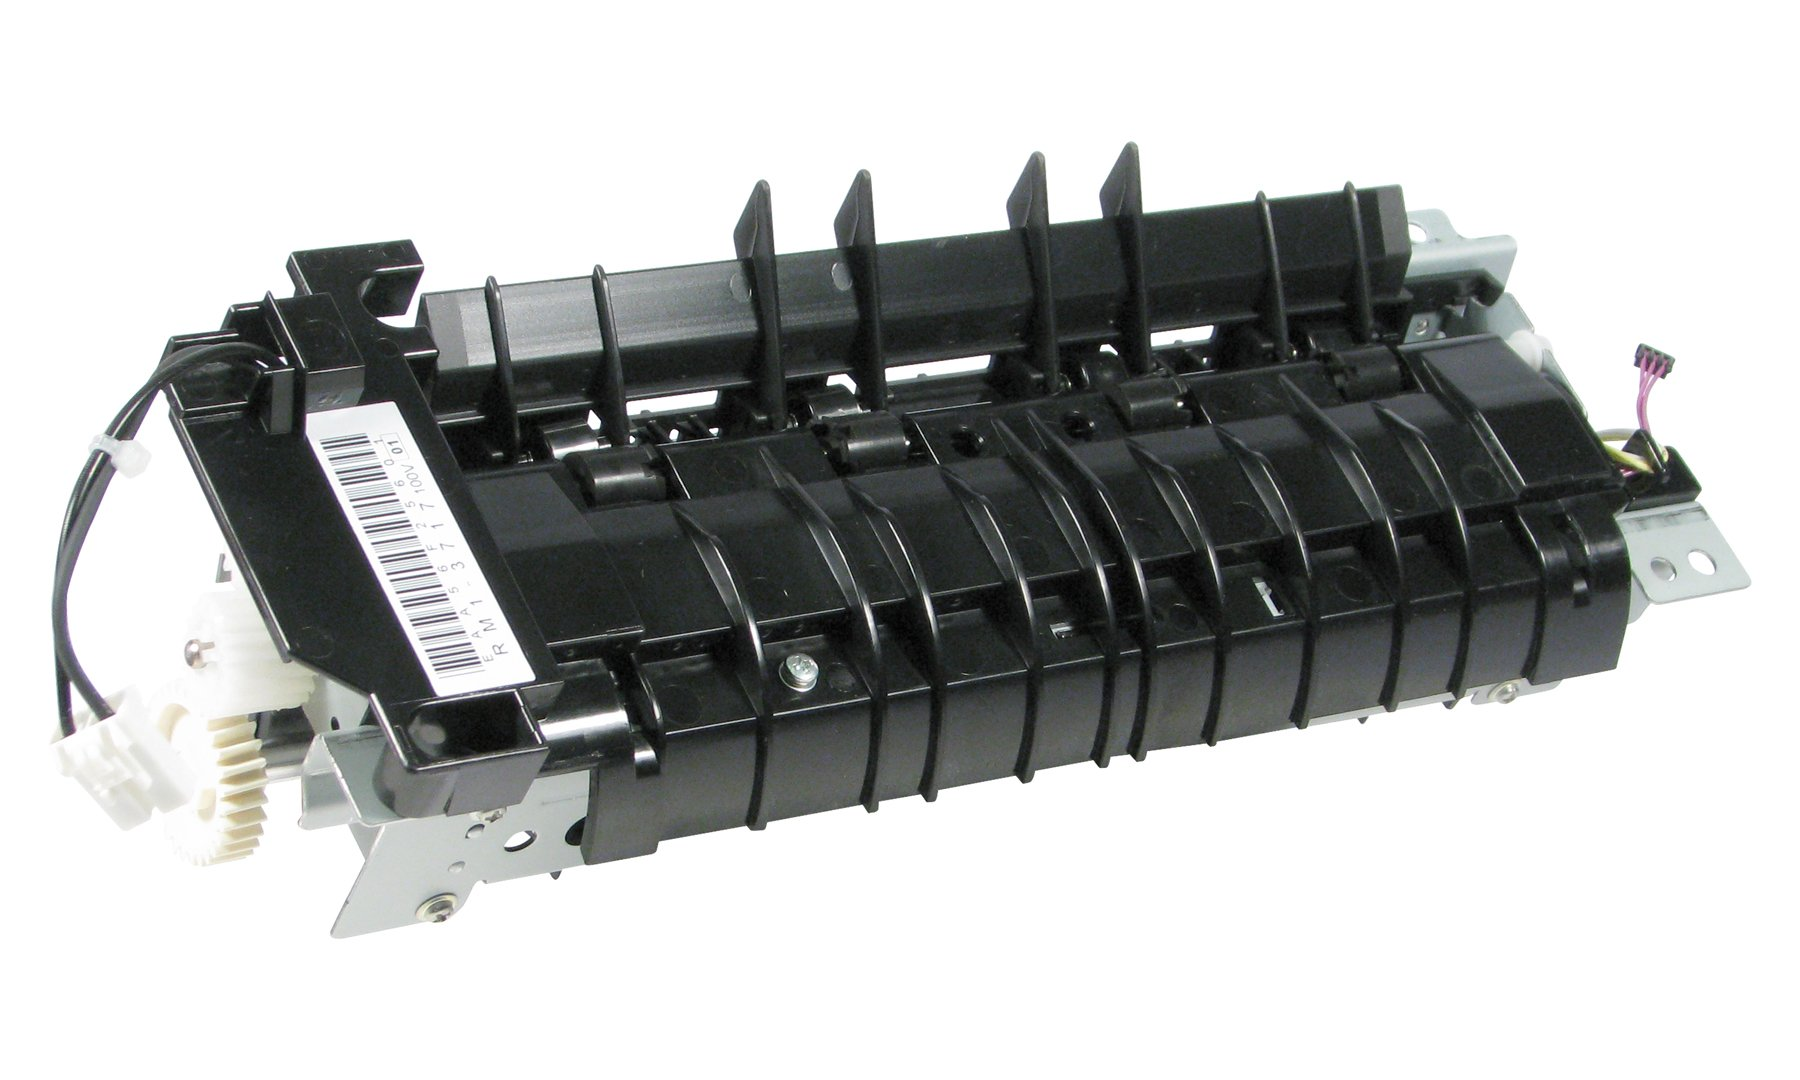 DPI RM1-3717-REF Refurbished Fuser Assembly for HP